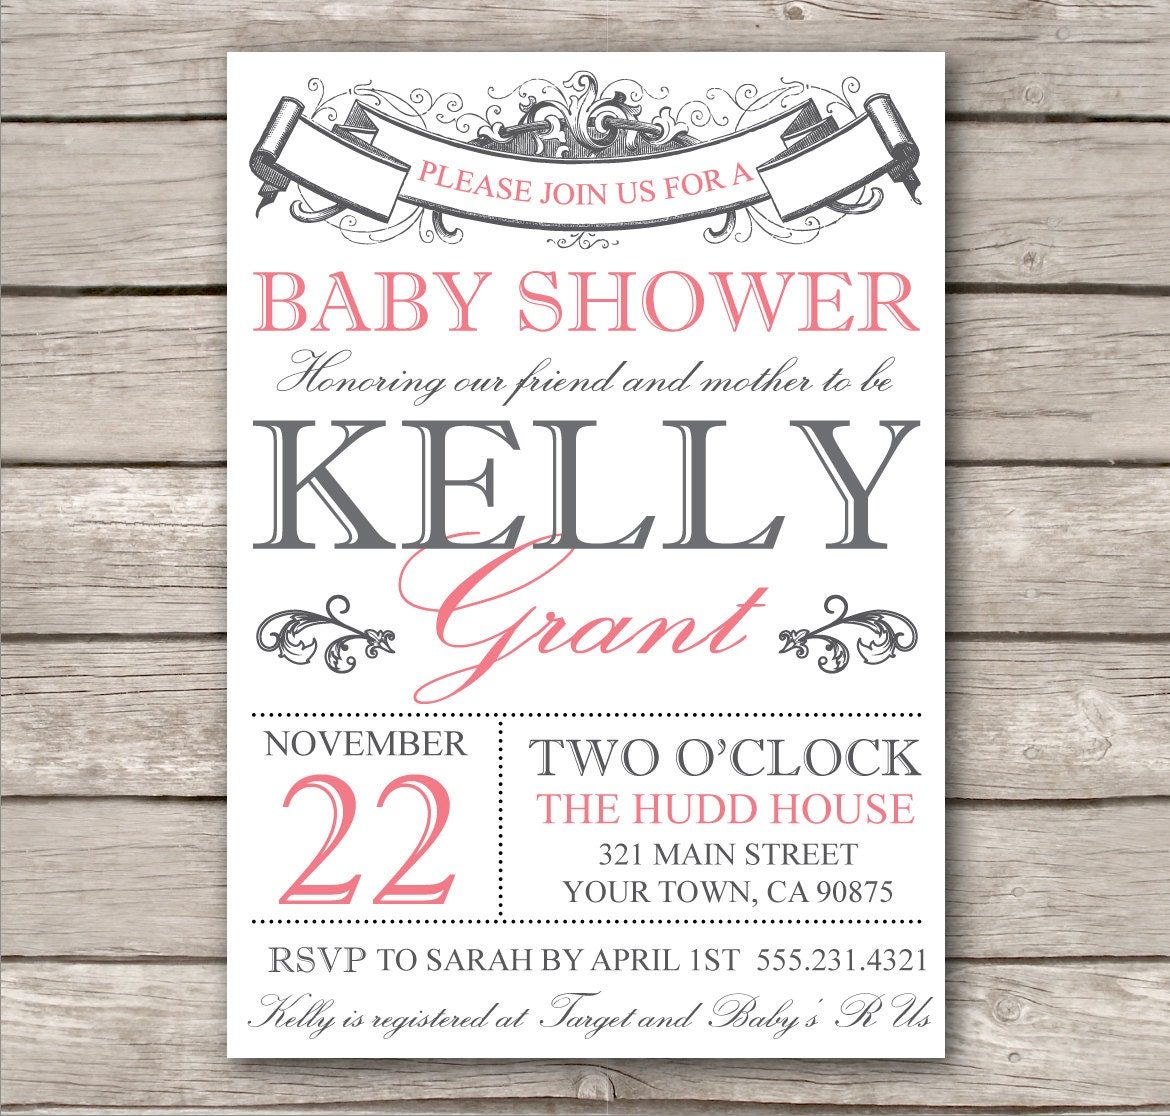 bridal shower invitation or baby shower invitation by westandpine